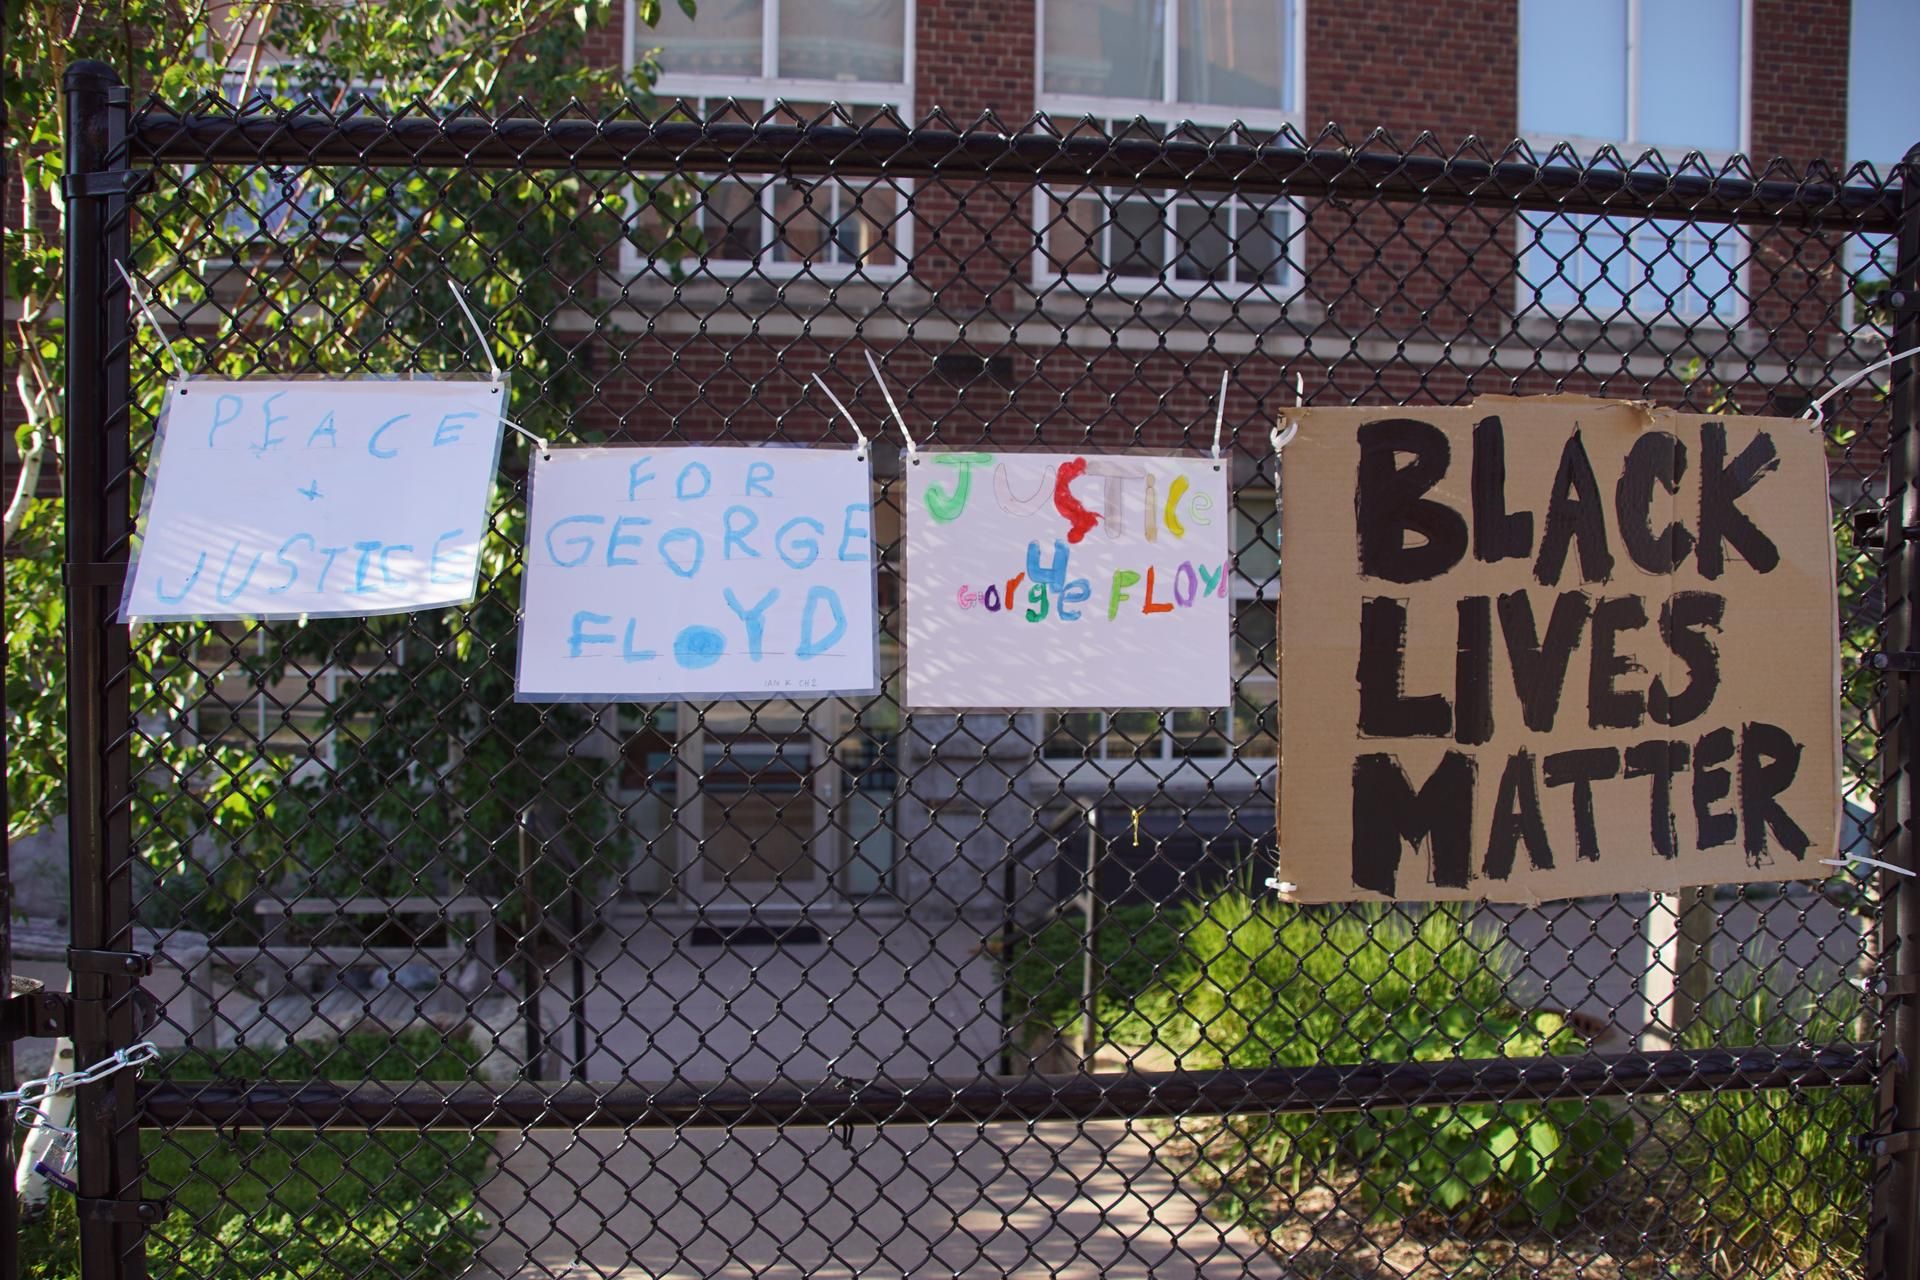 Signs on 38th street fence, including Black Lives Matter